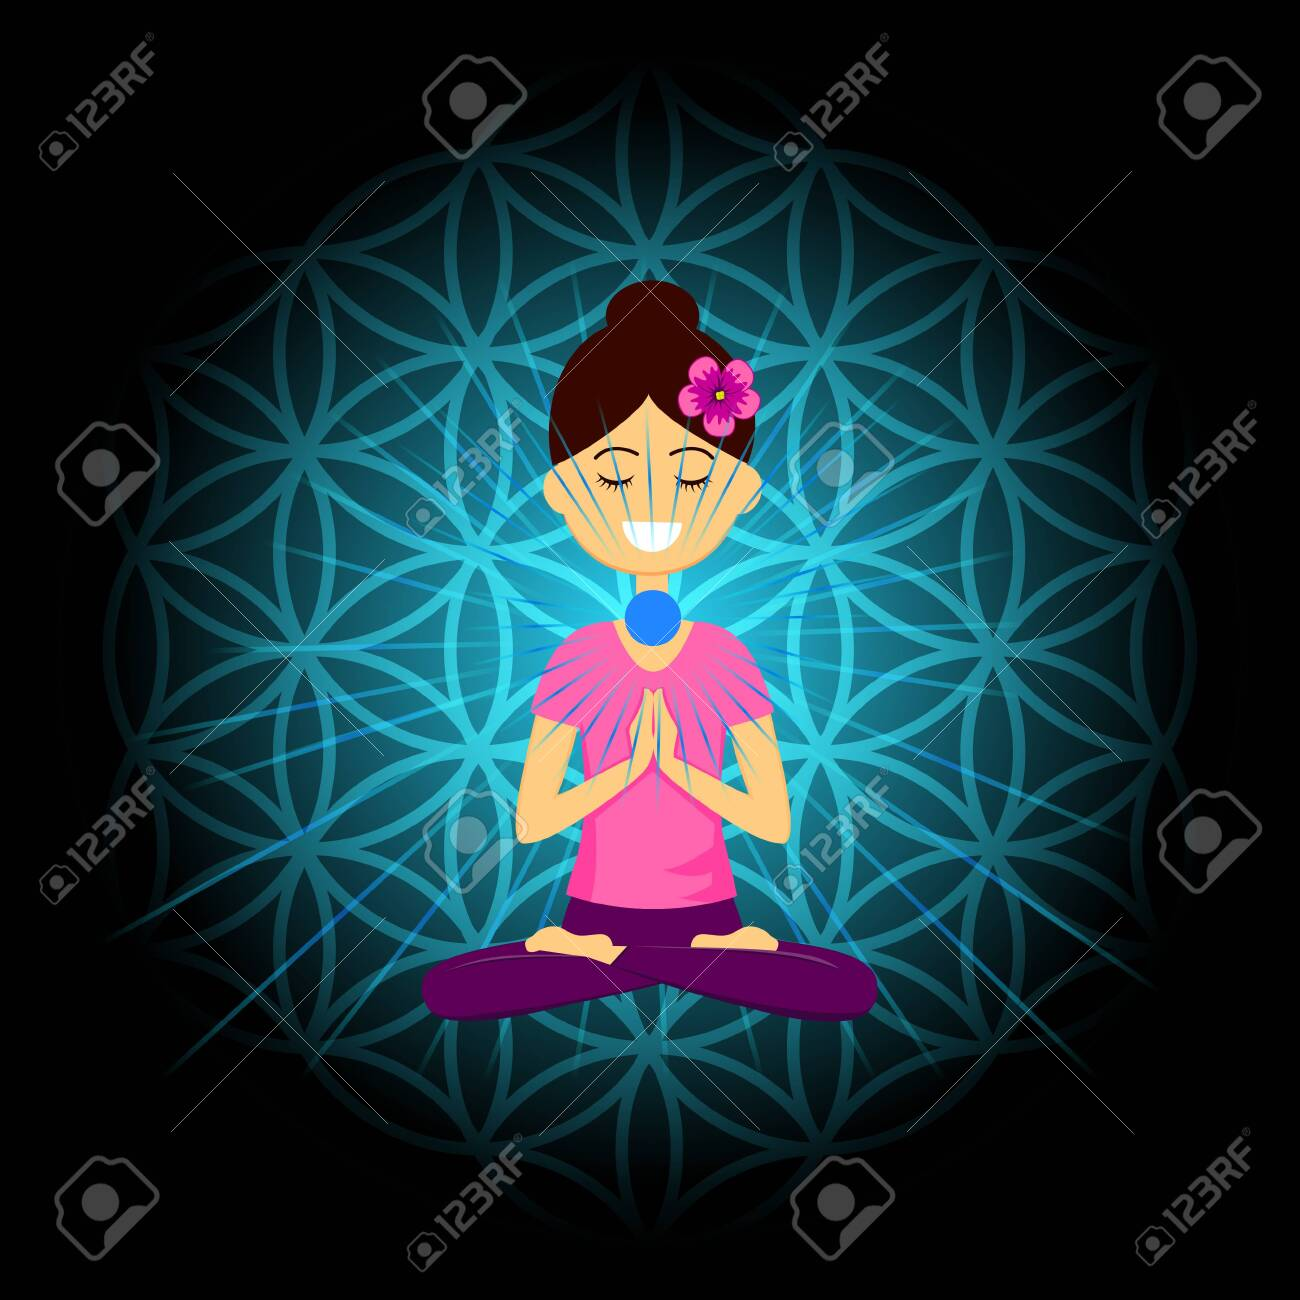 Cartoon character smiling woman is sitting in lotus position with namaste hands. Vishuddha chakra activation. Vector illustration. - 153295205